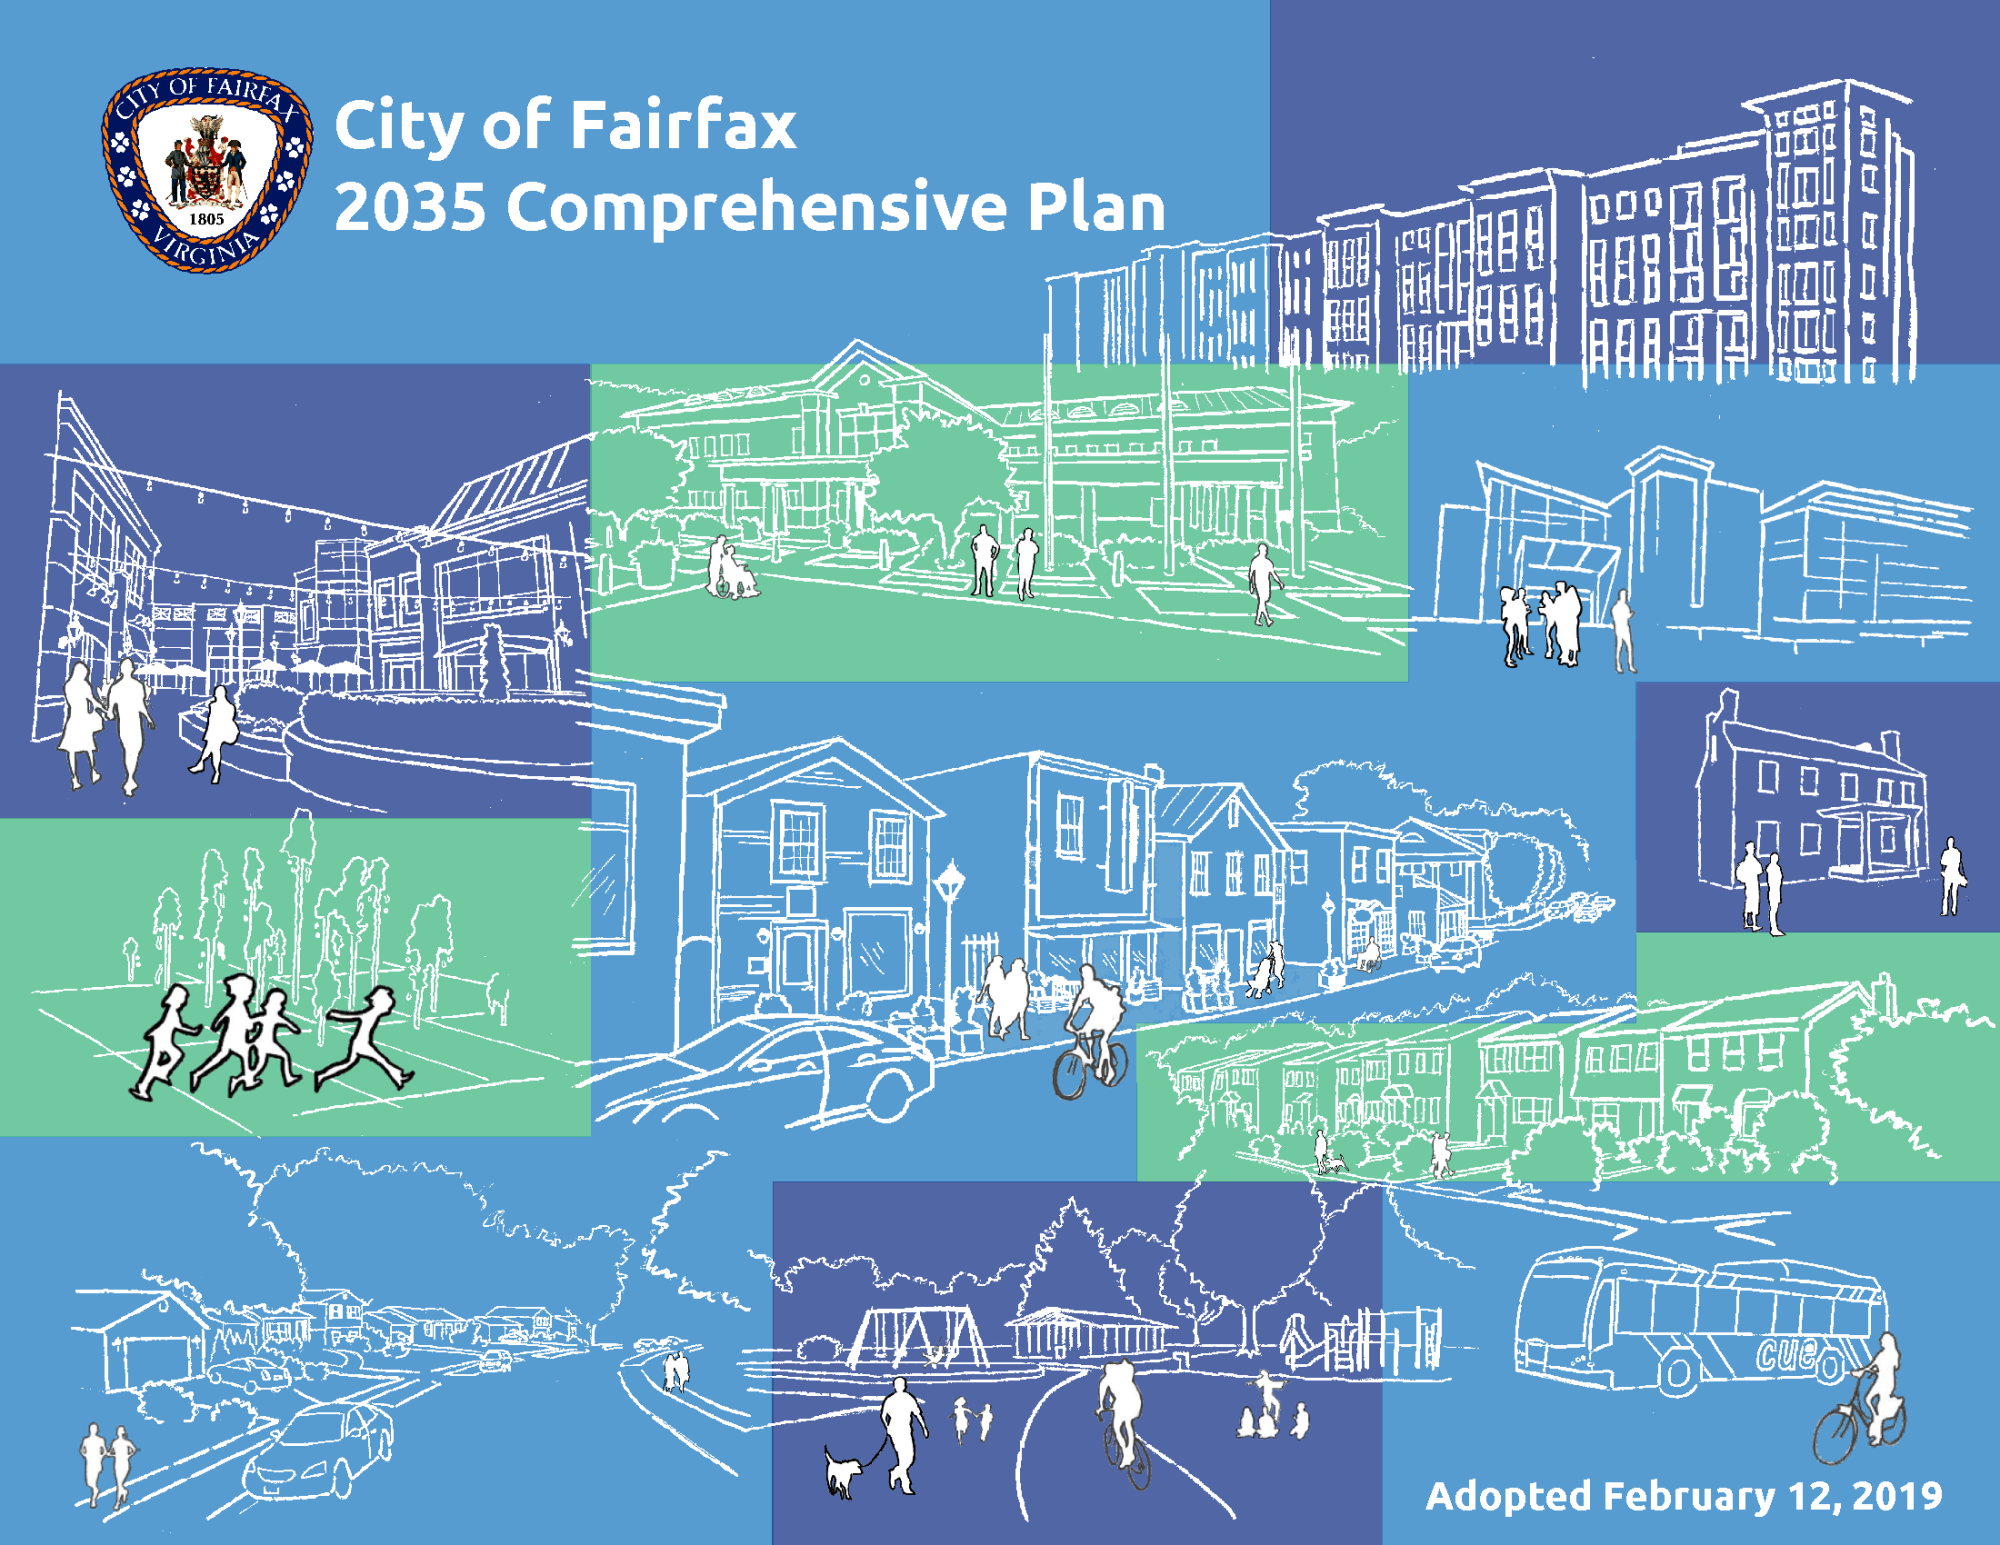 City of Fairfax 2035 Comprehensive Plan Cover